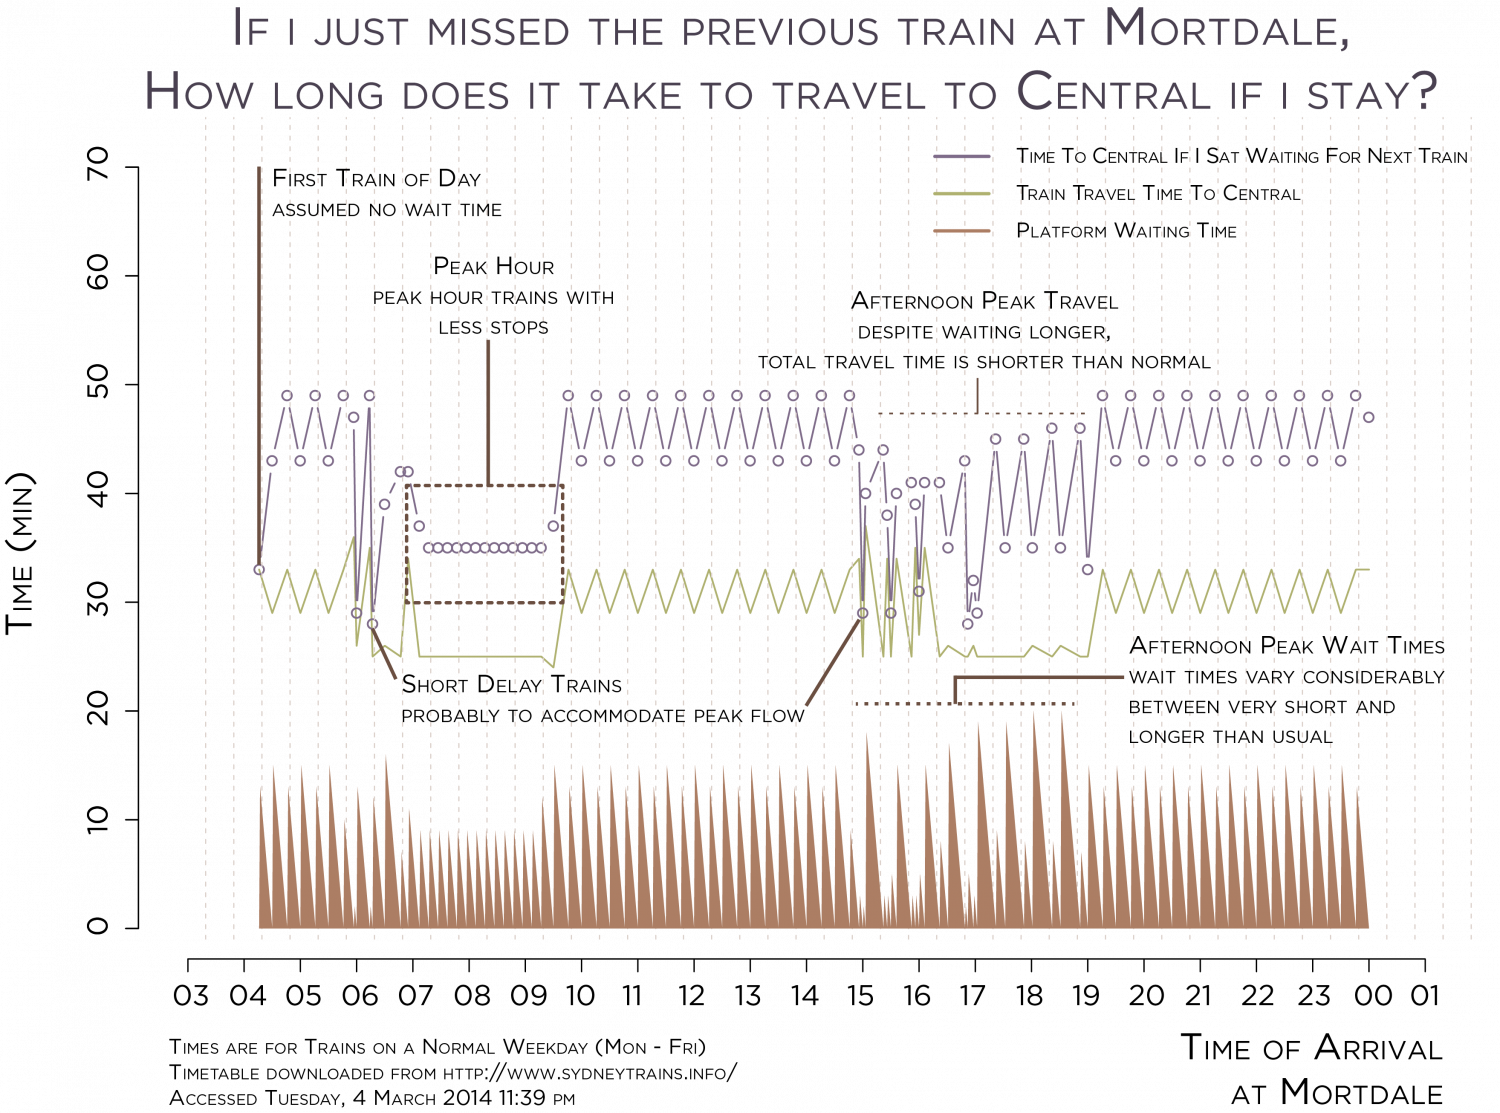 Sydney Trains Worst Case Travel Times (Mortdale-Central) Infographic